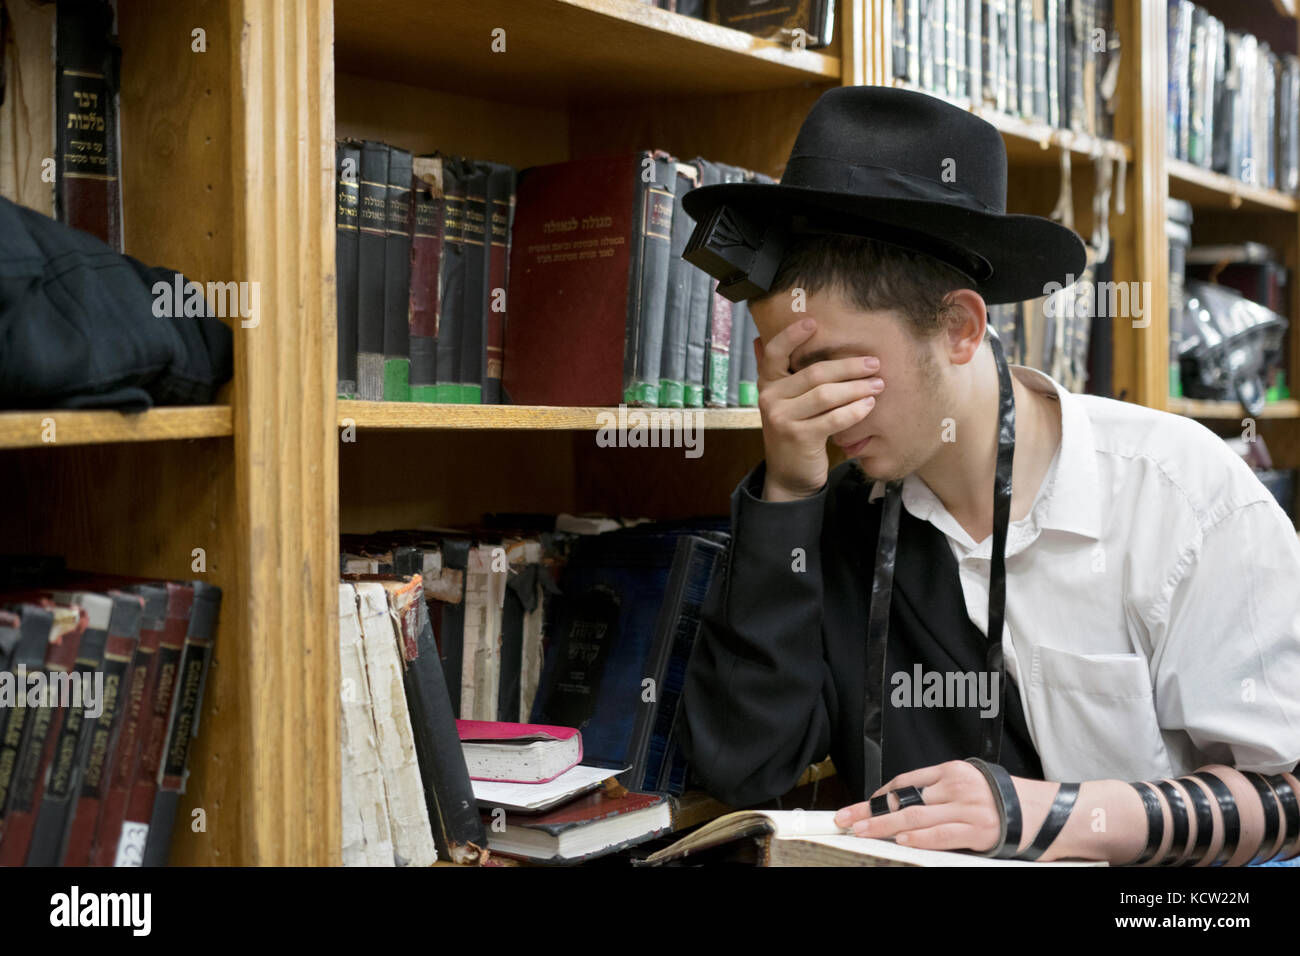 A religious Jewish young man wearing phylacteries at morning prayers in a synagogue in Brooklyn, New York. - Stock Image